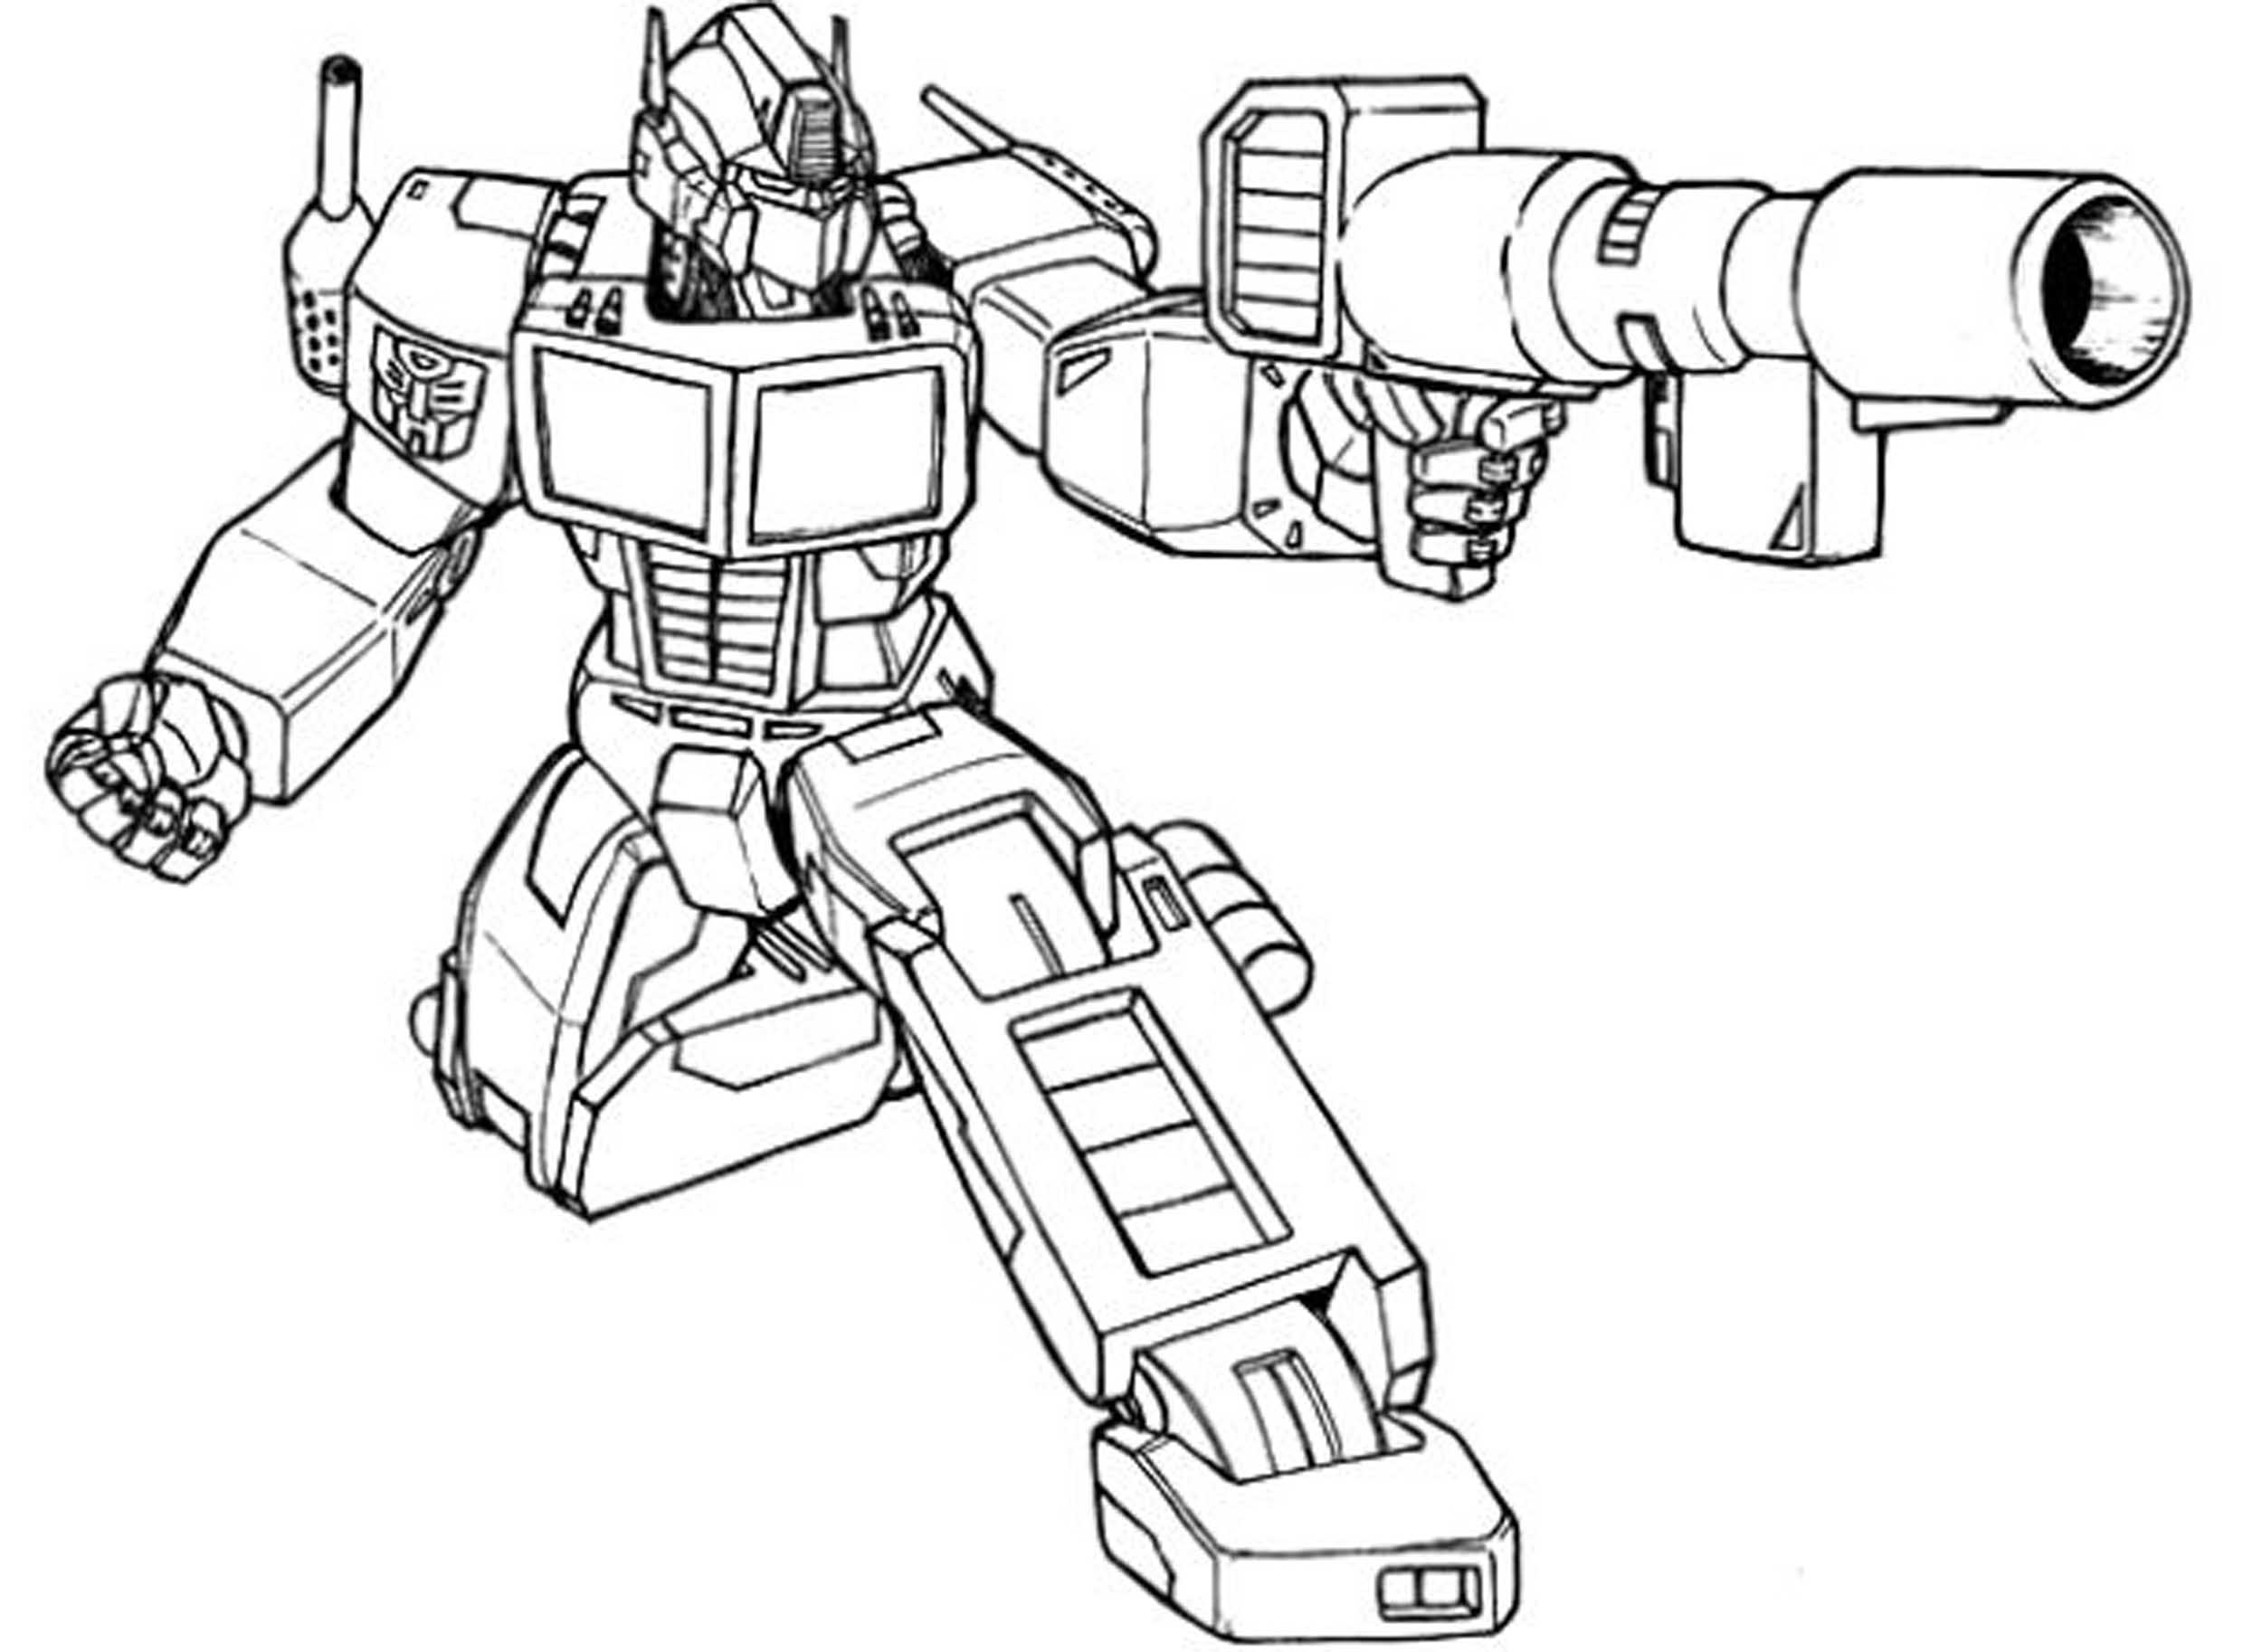 Inviting Kids To Do The Transformers Coloring Pages Best Apps For Kids